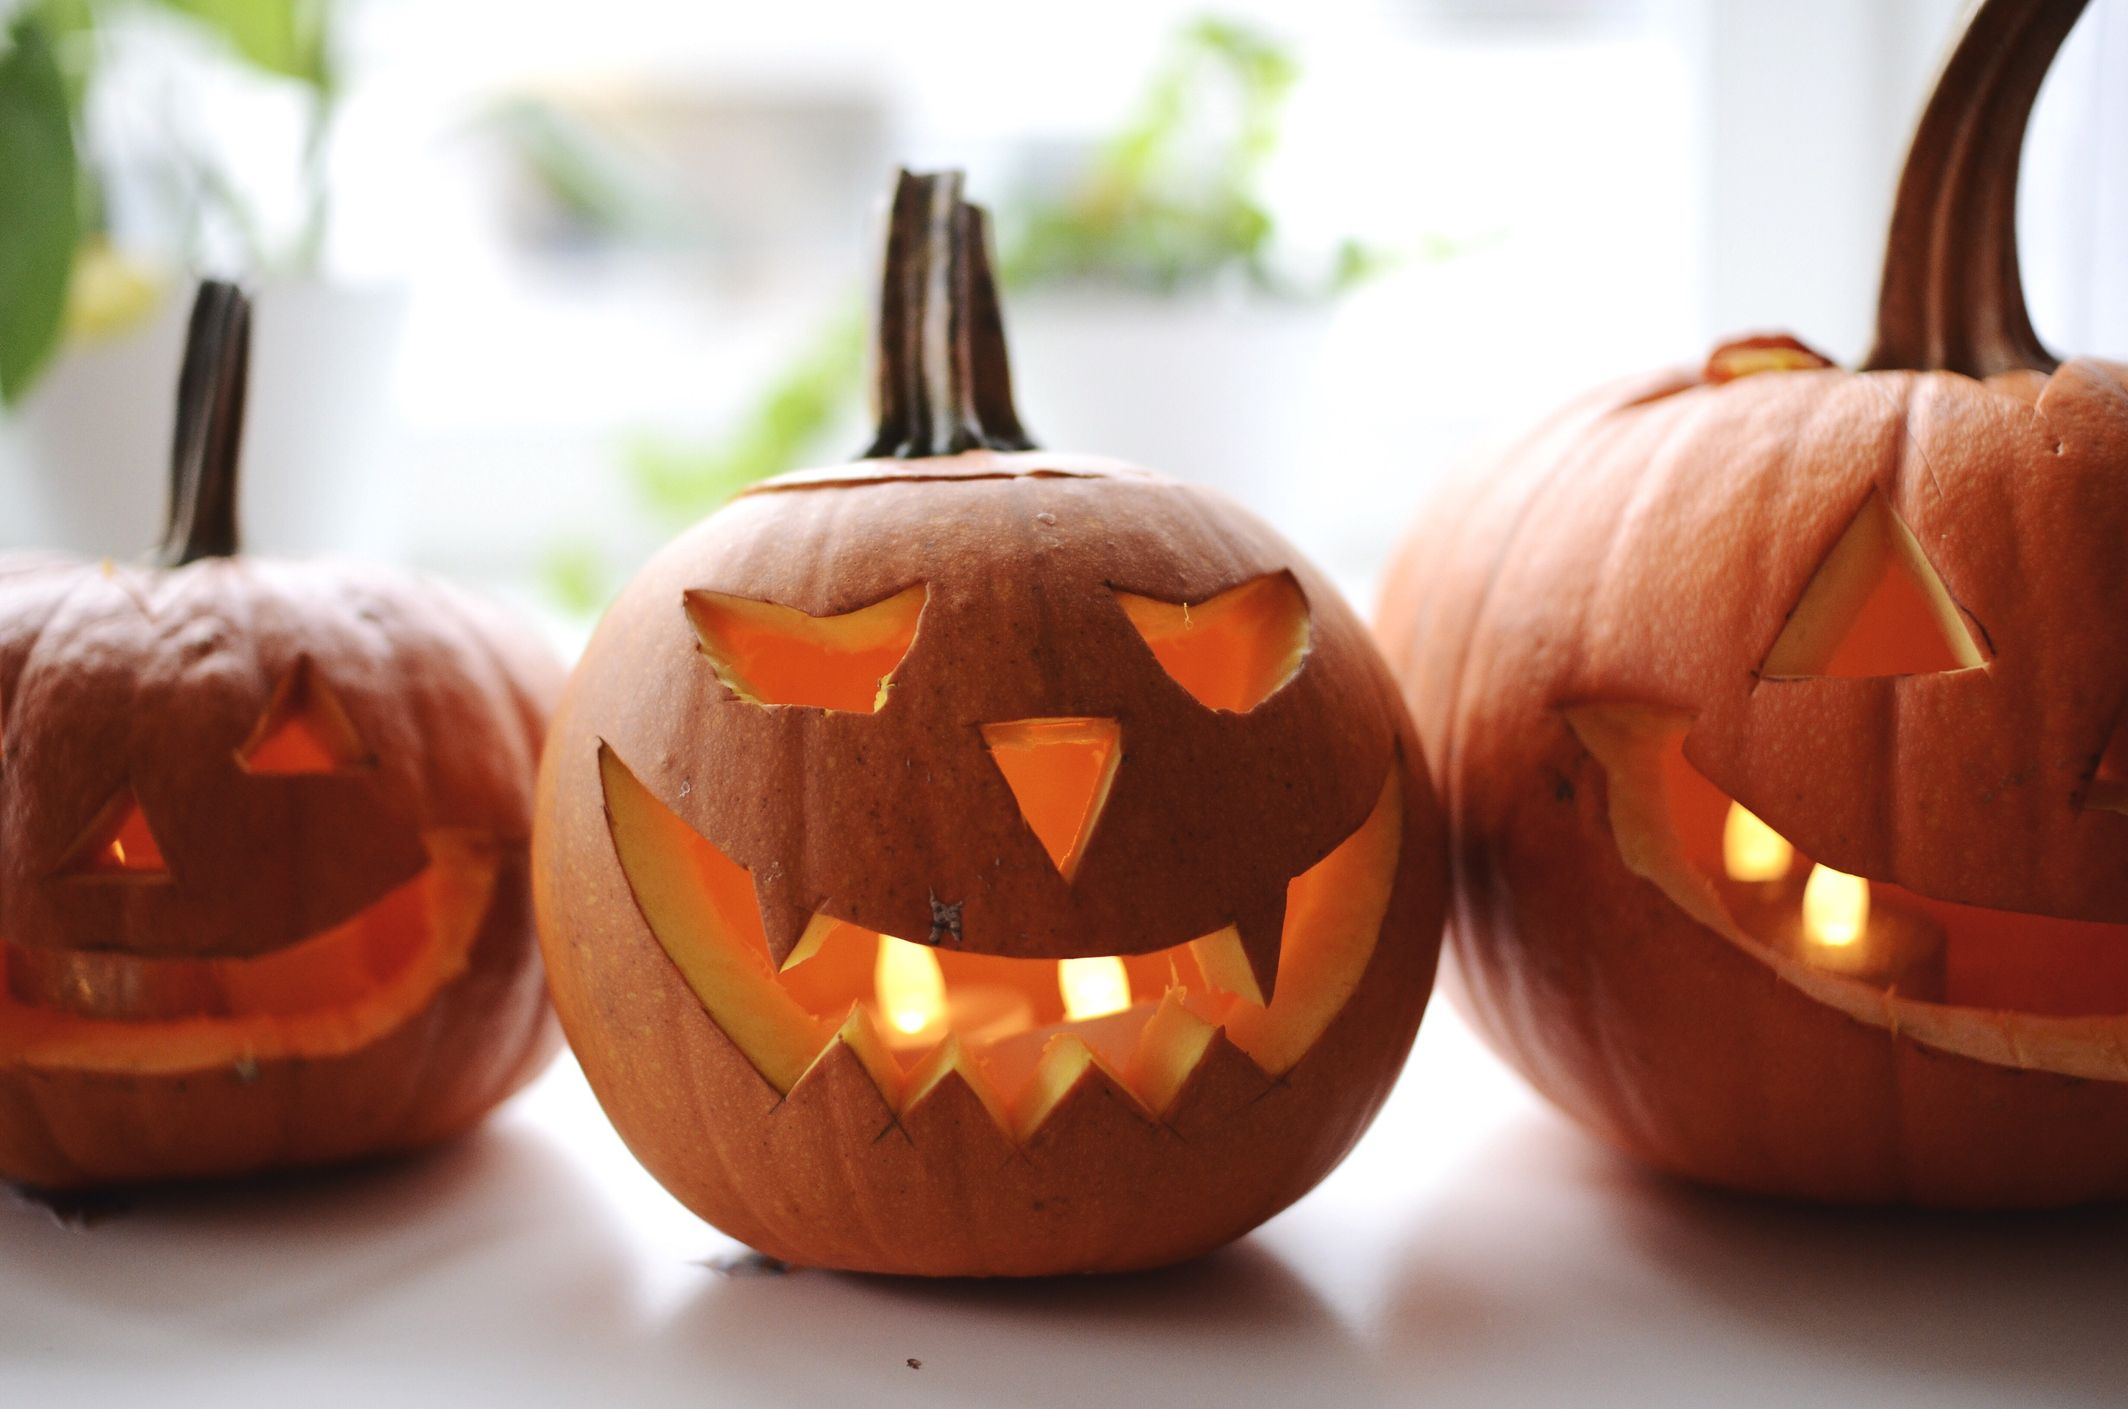 64 Funny Halloween Puns - Cute Punny Word List for Halloween